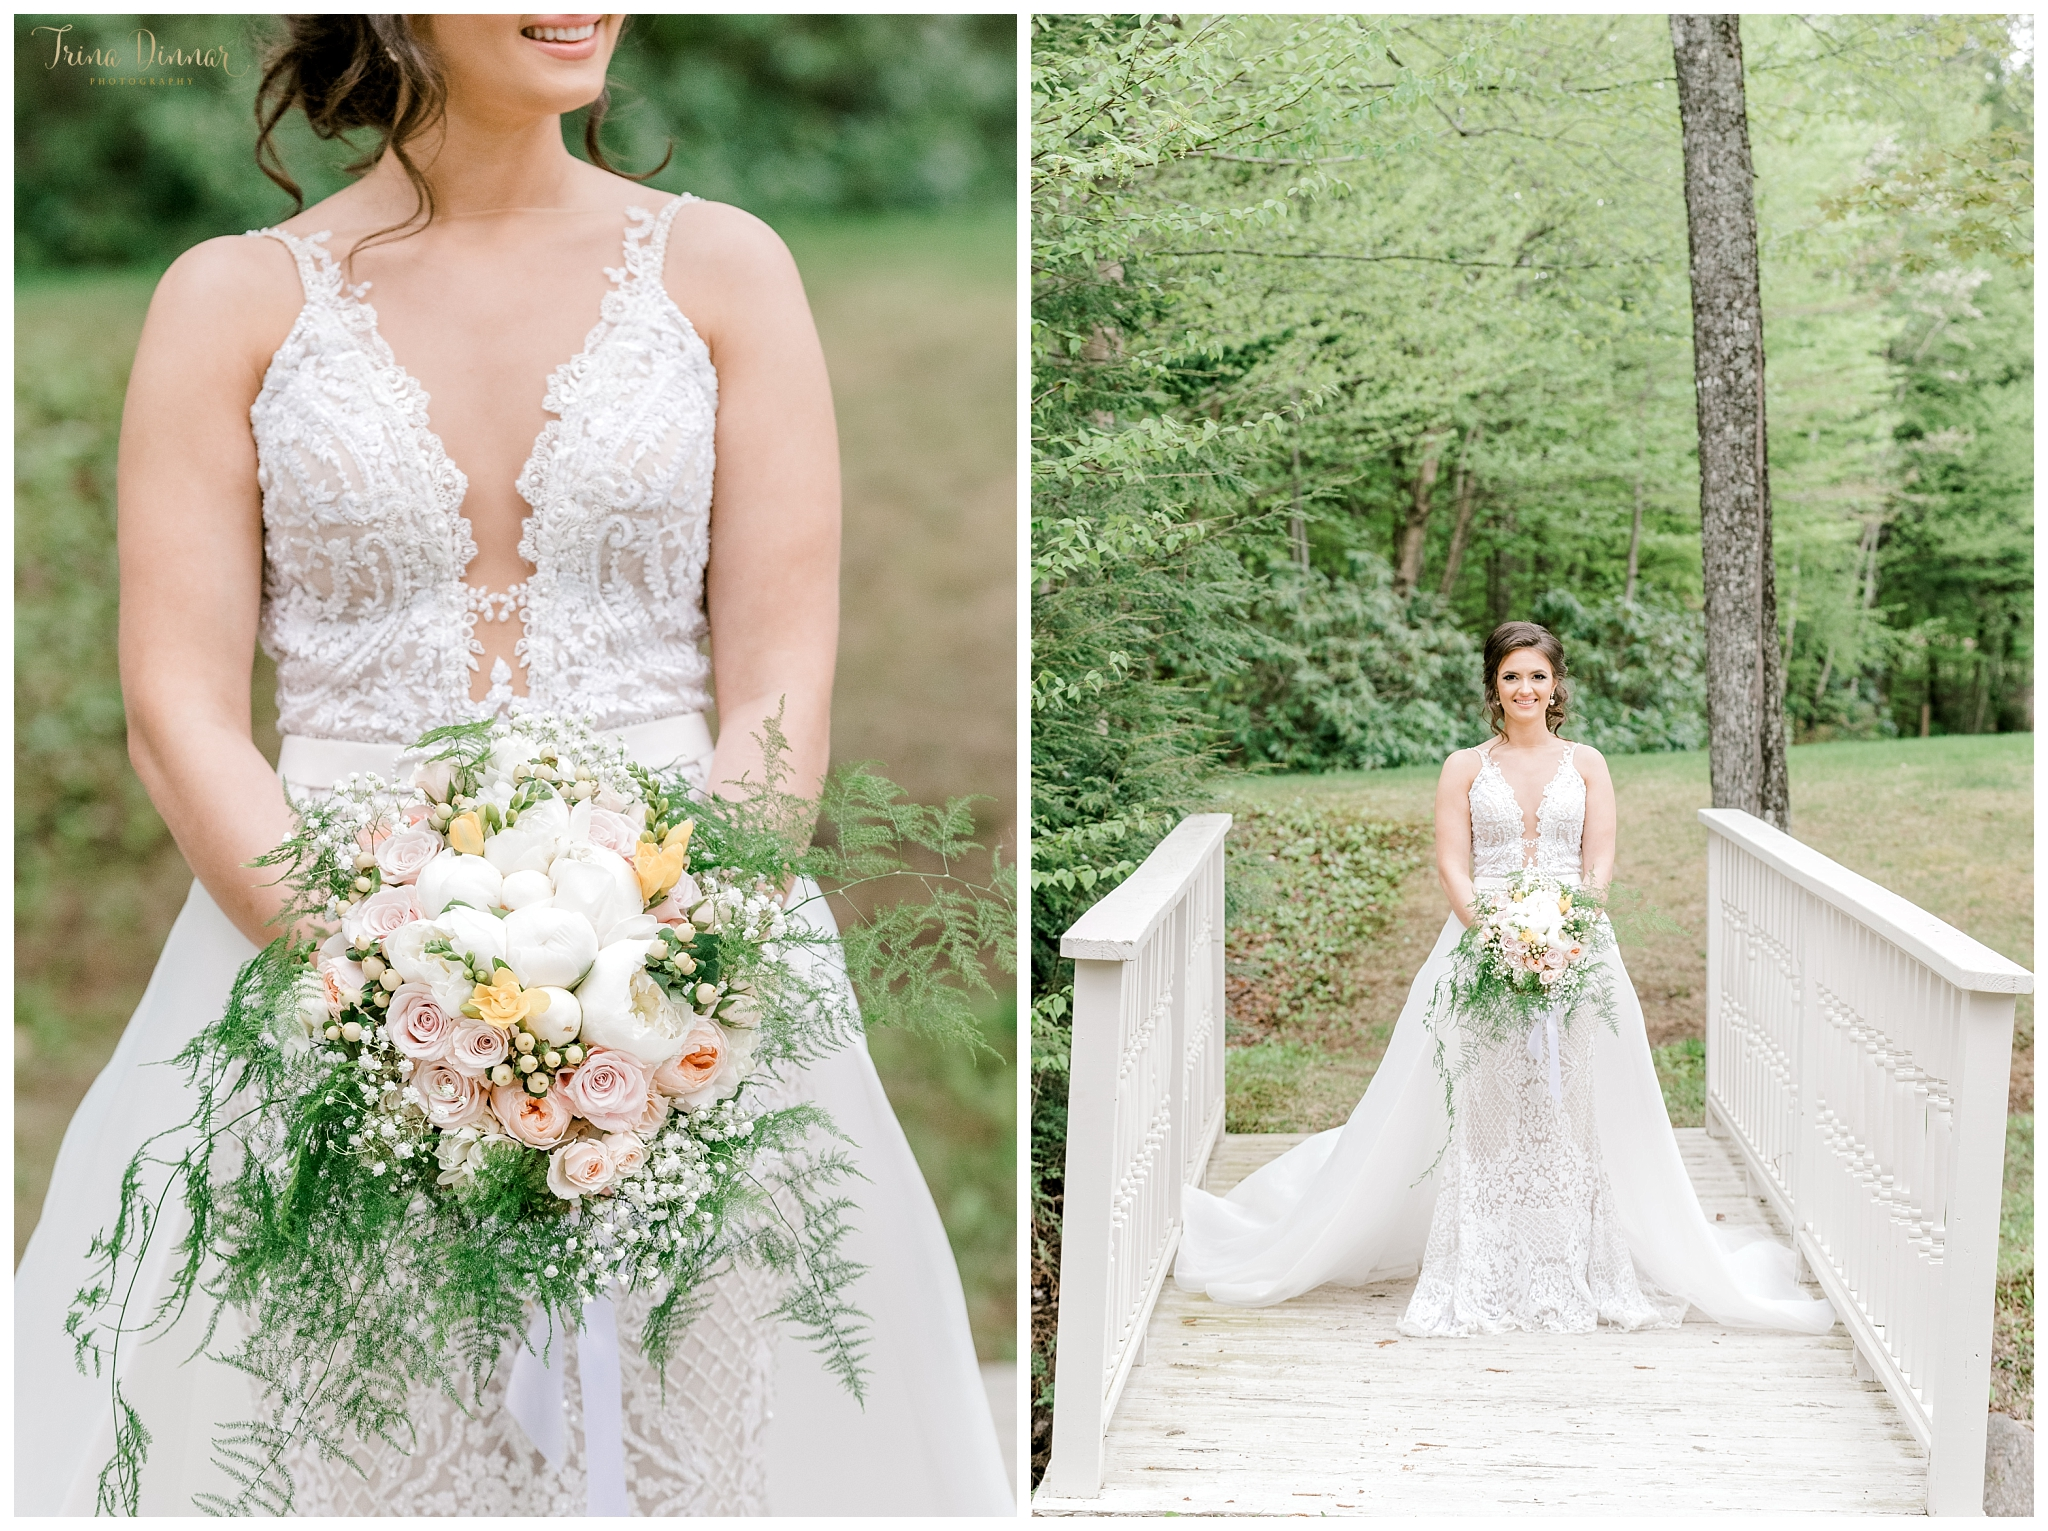 Sunday River Ski Resort Bridal Wedding Photography in Newry, Maine.